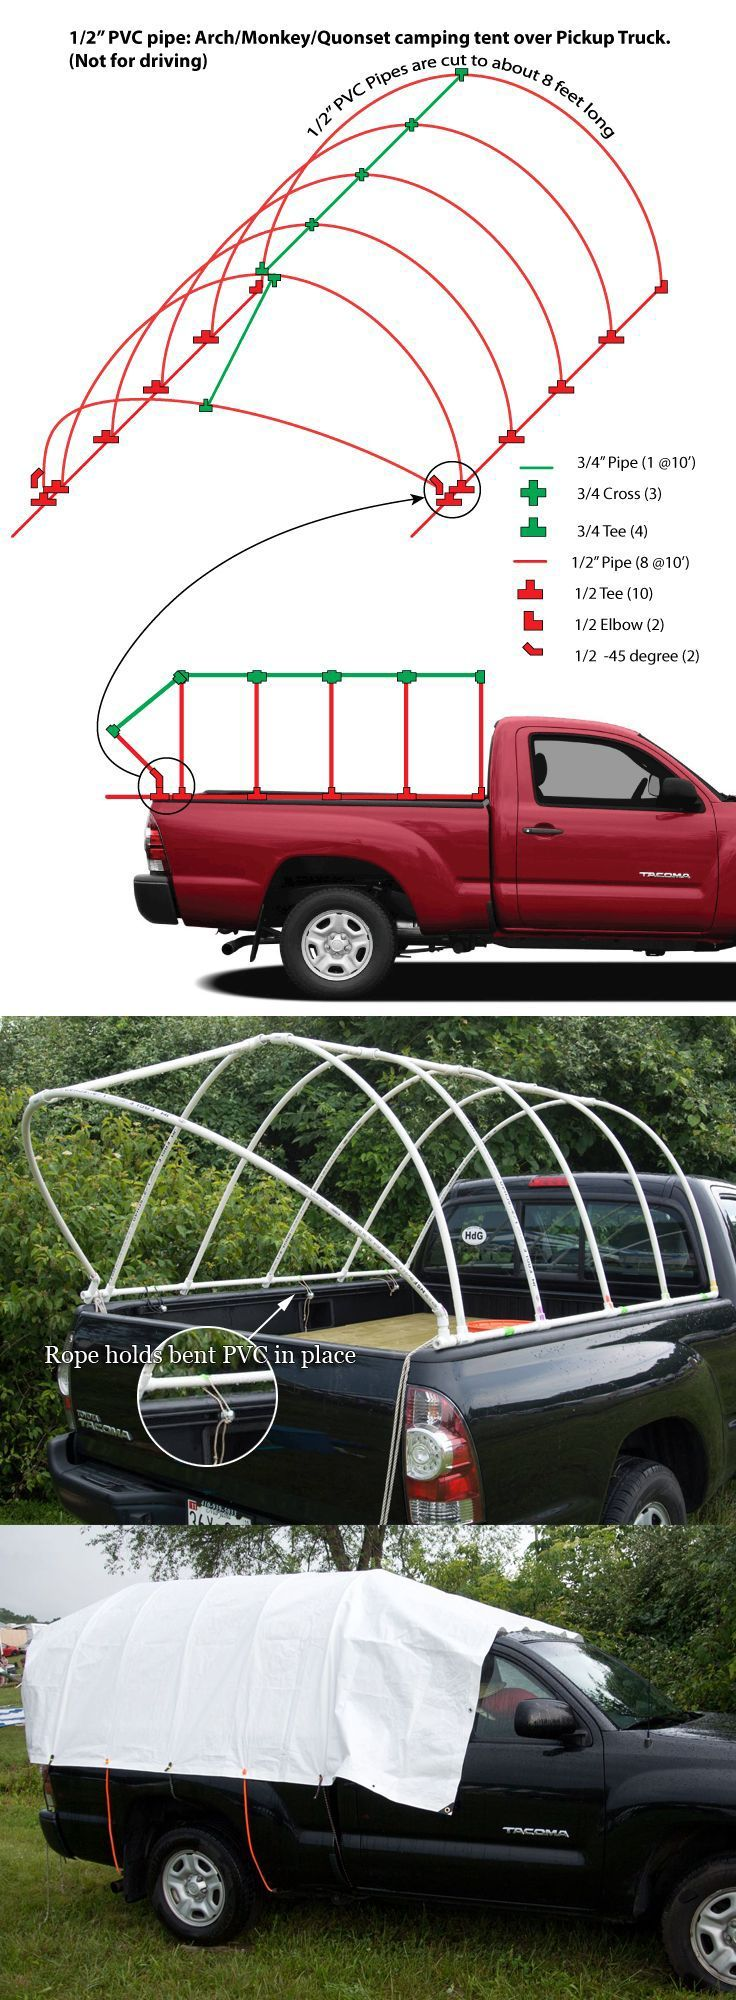 PVC Pipe Truck Tent: Monkey Hut / Quonset Hut DIY camping tent over Pickup Truck. Music Festival, Burning Man Festival.